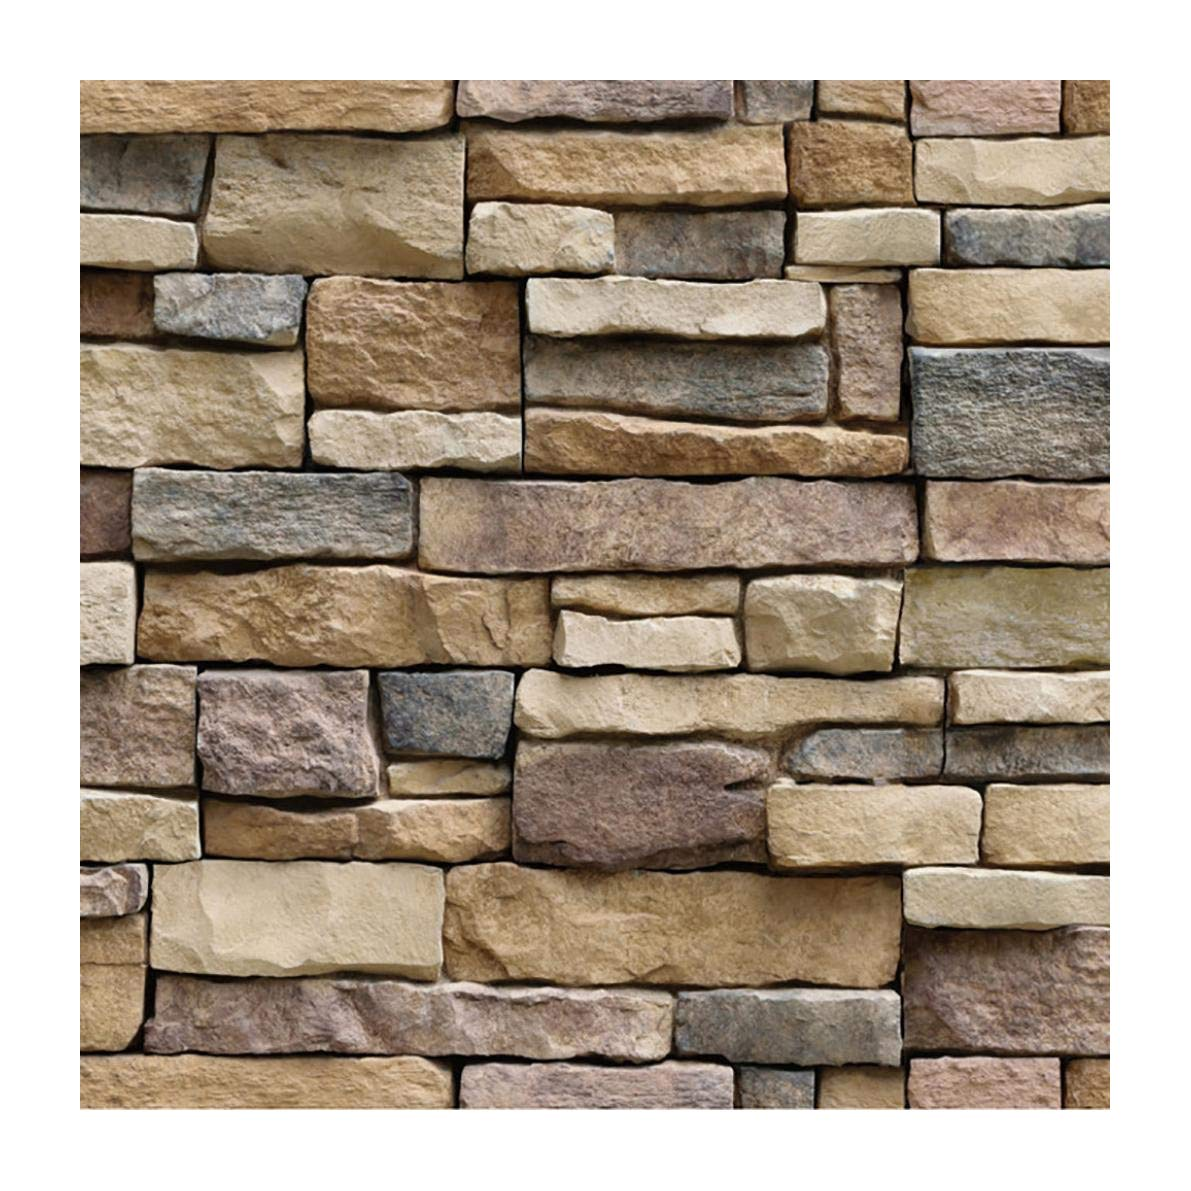 Whitegeese Peel and Stick Tile Backsplash Self-Adhesive Wall Tiles for Home, Natural Brick Pattern